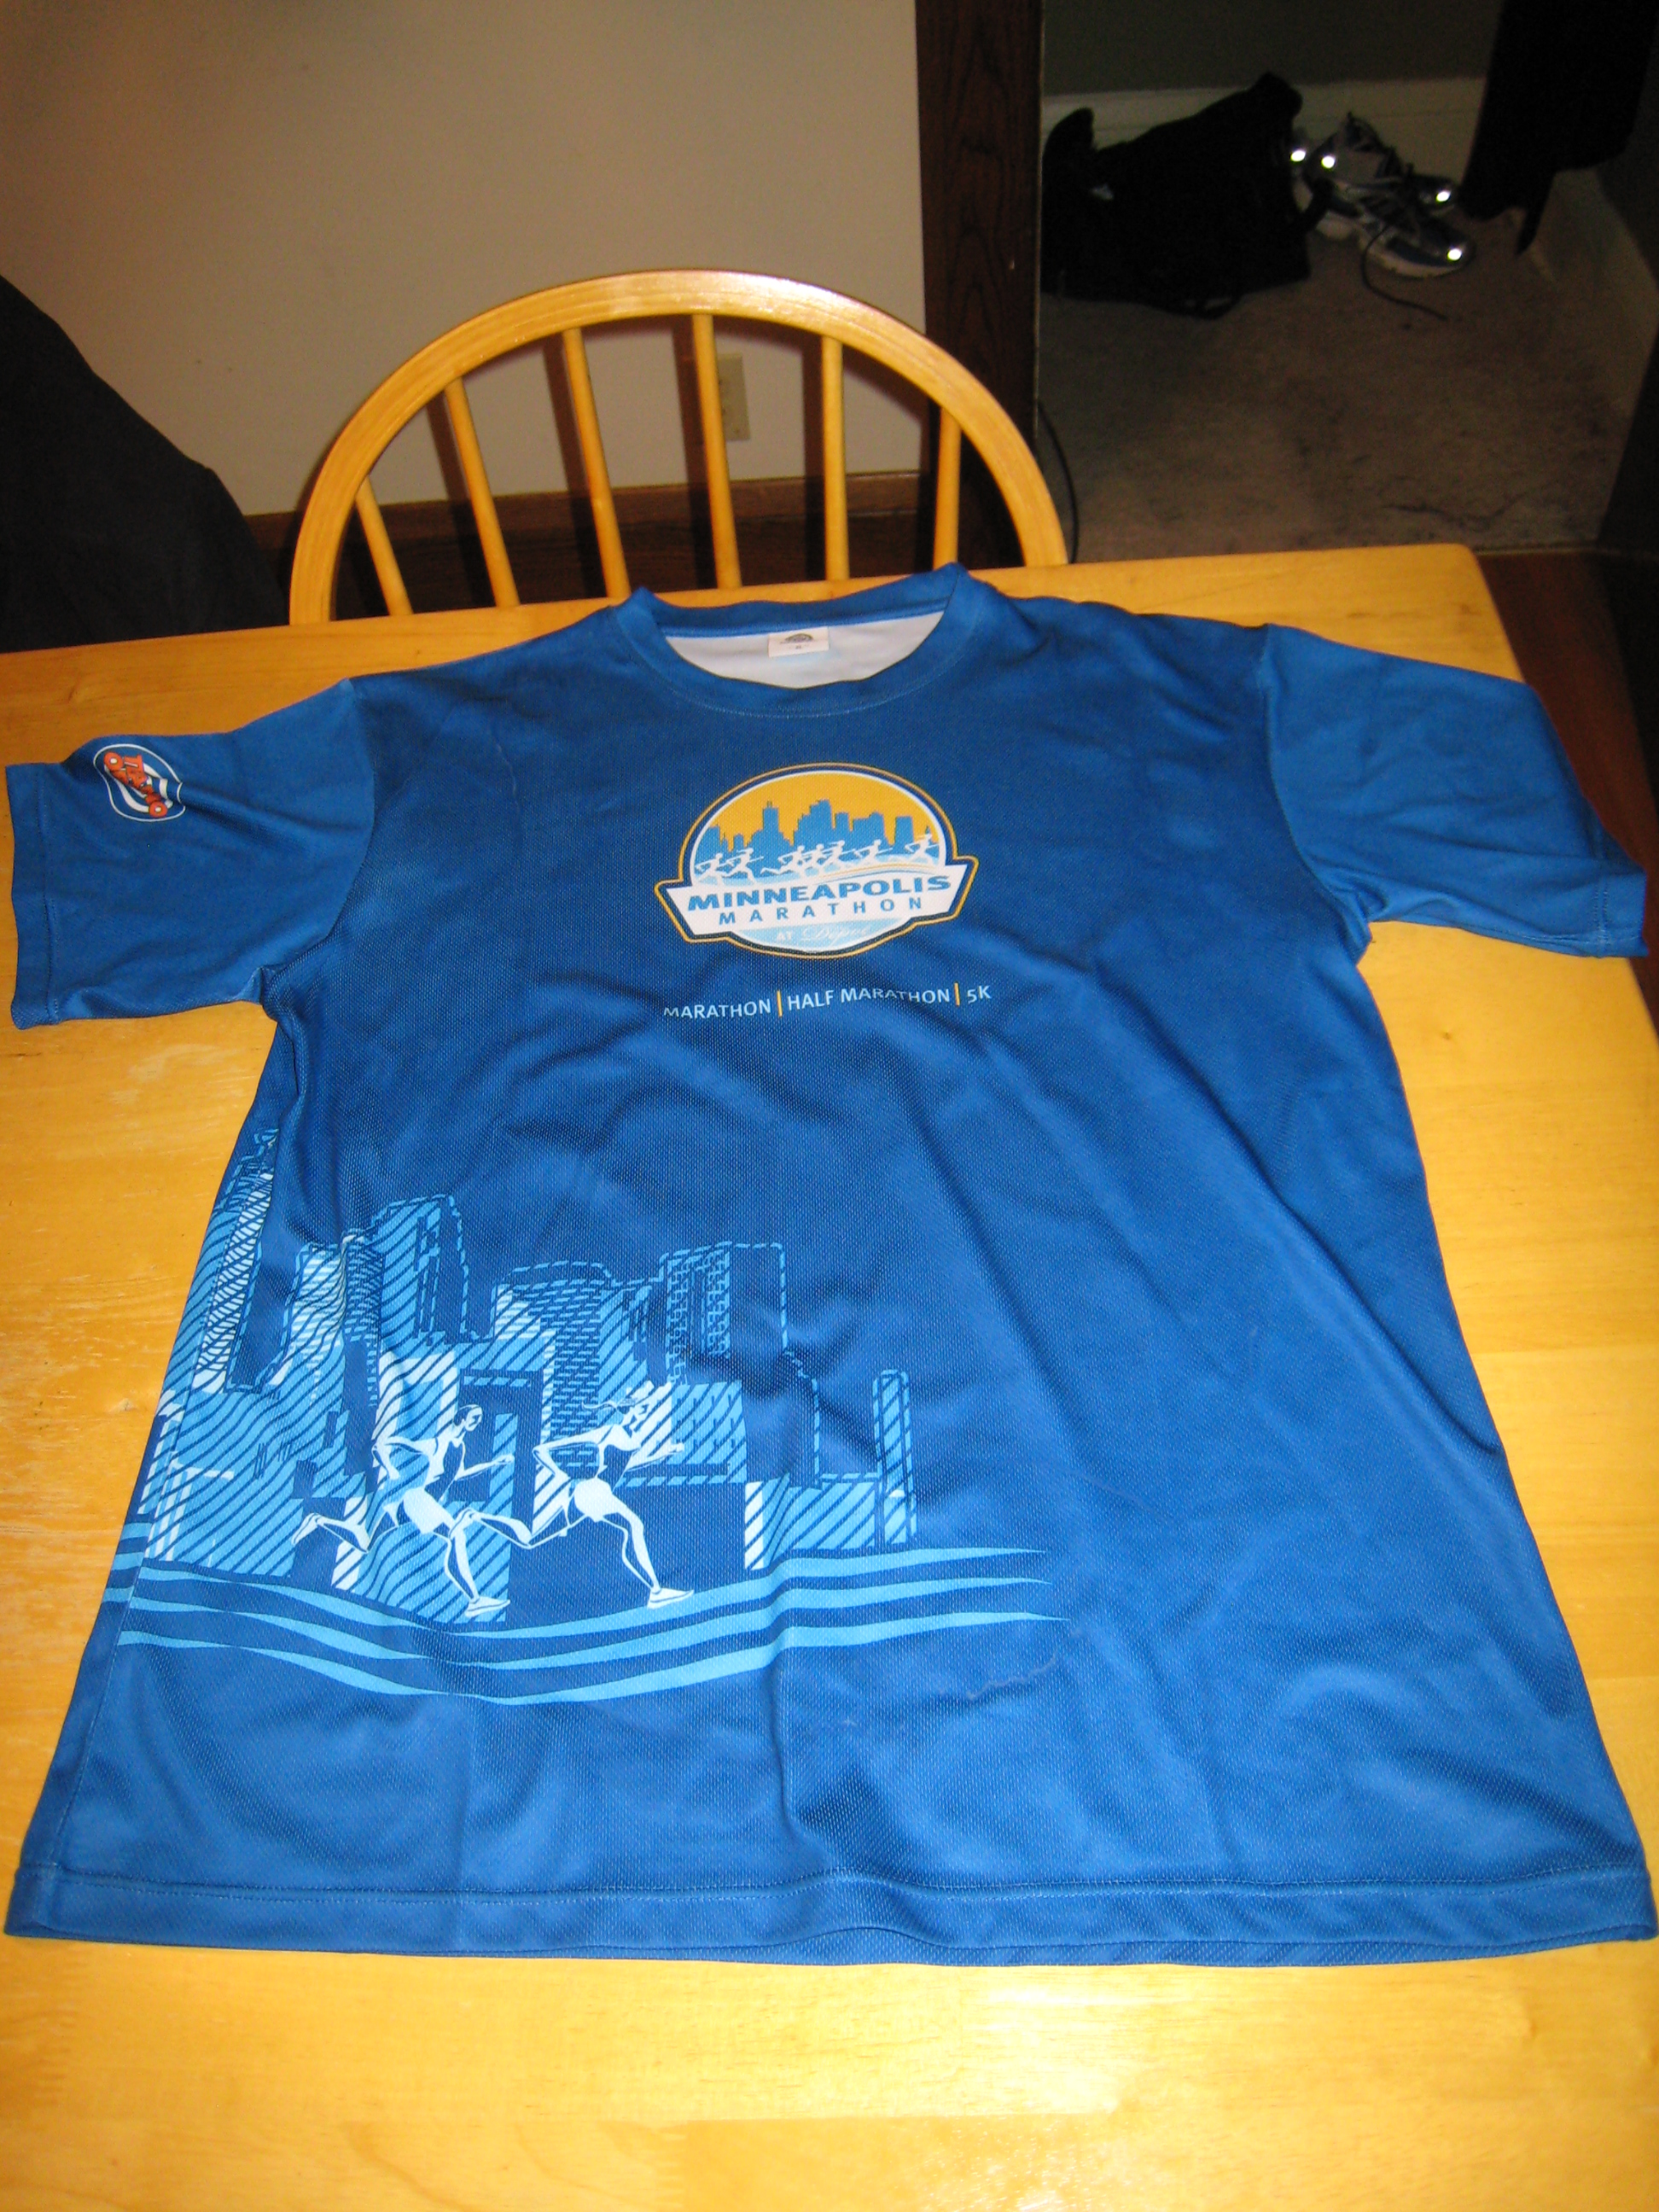 Minneapolis Marathon Race Shirt